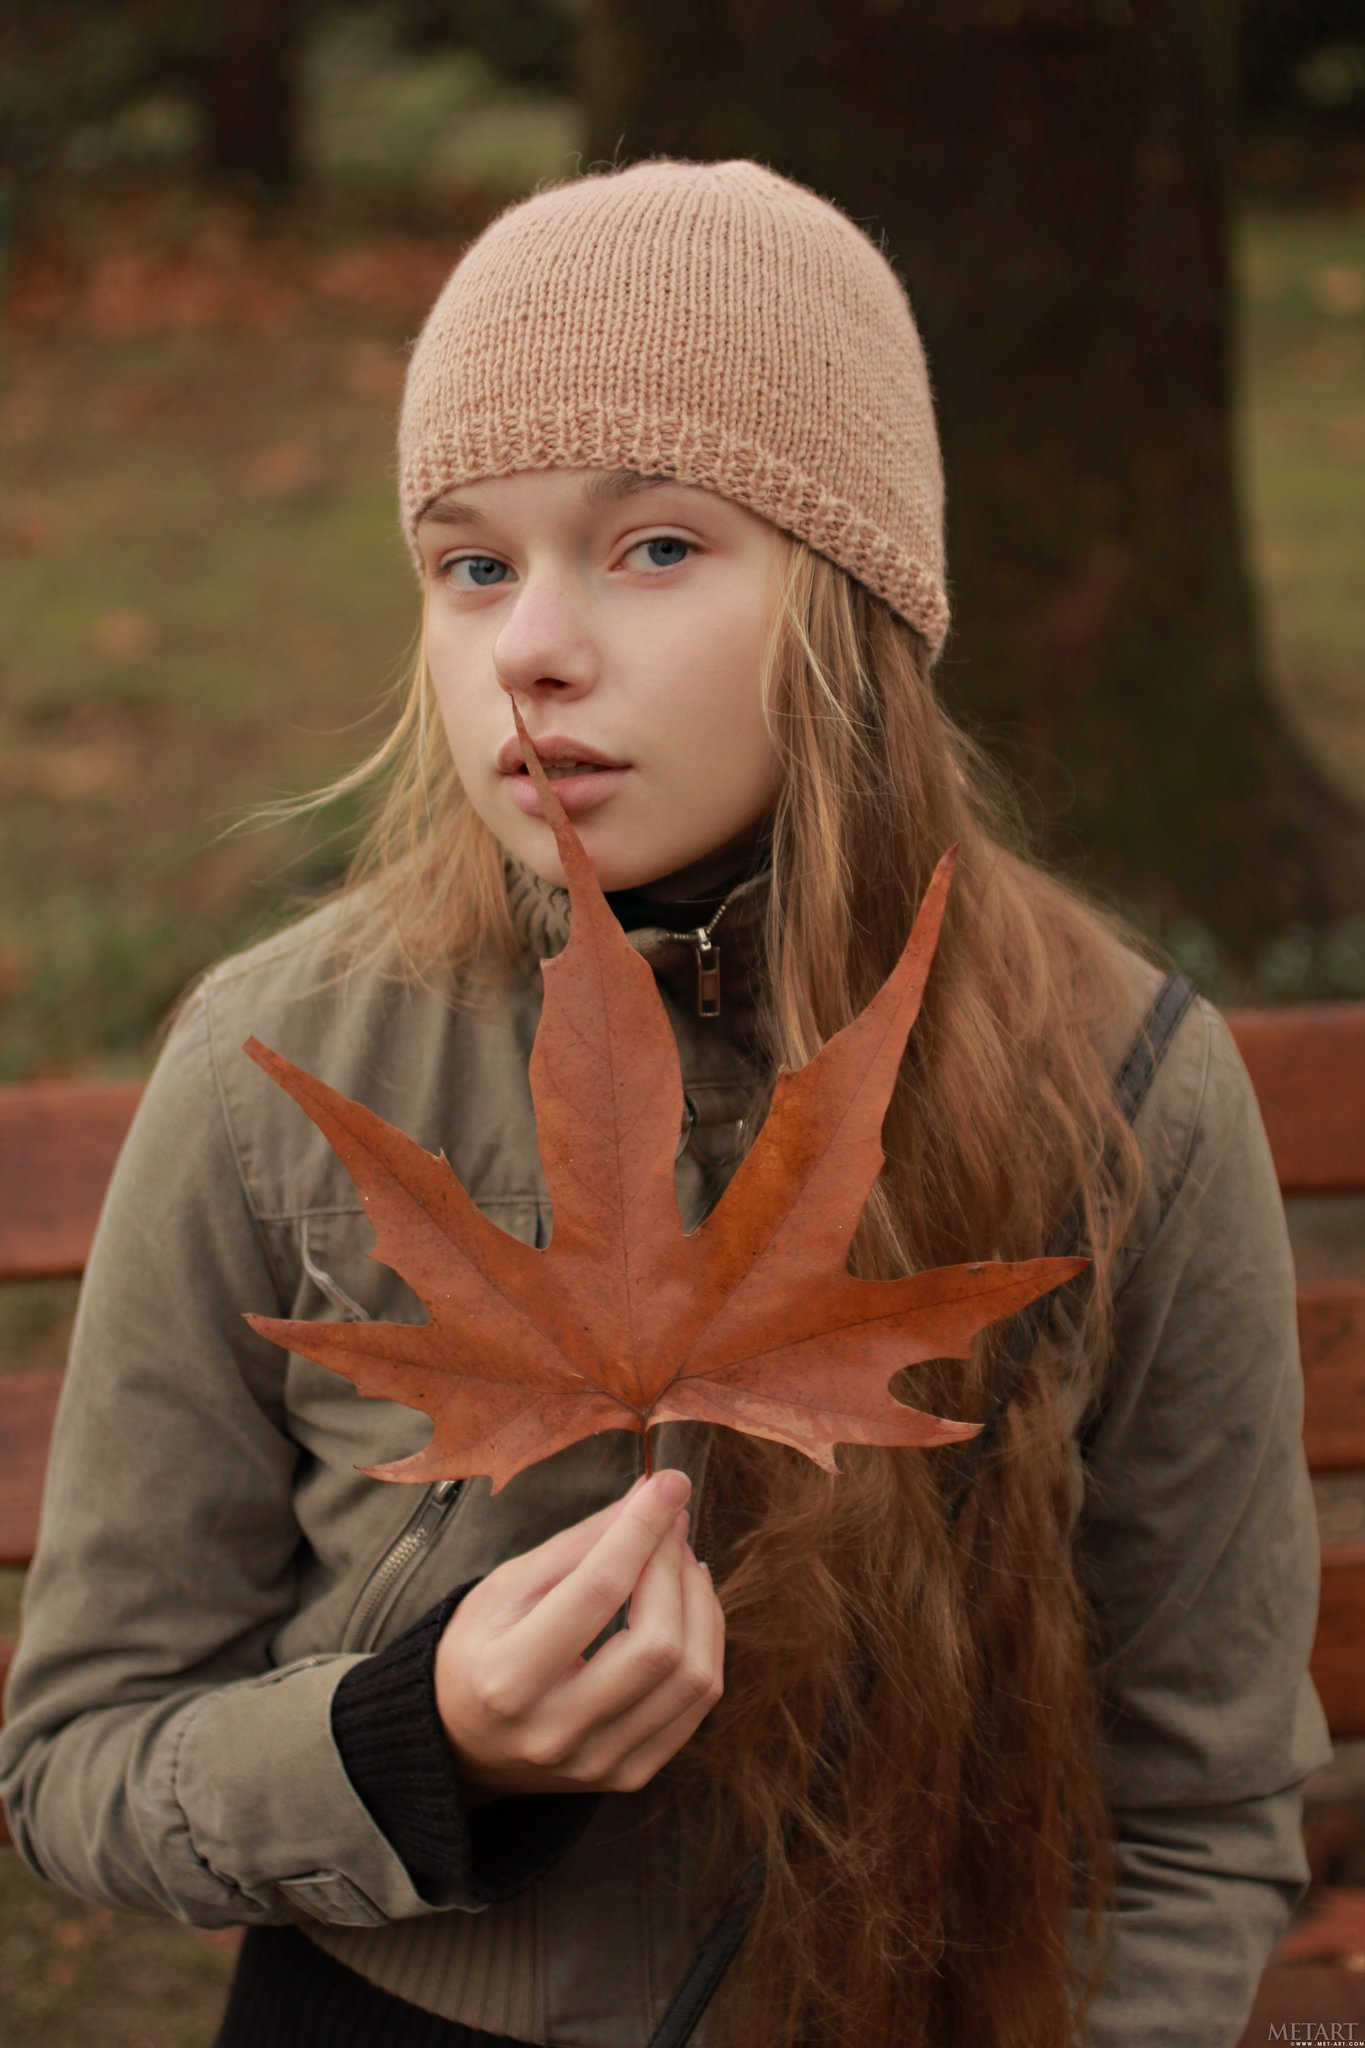 a Ukrainian girl named Milena posing with a leaf